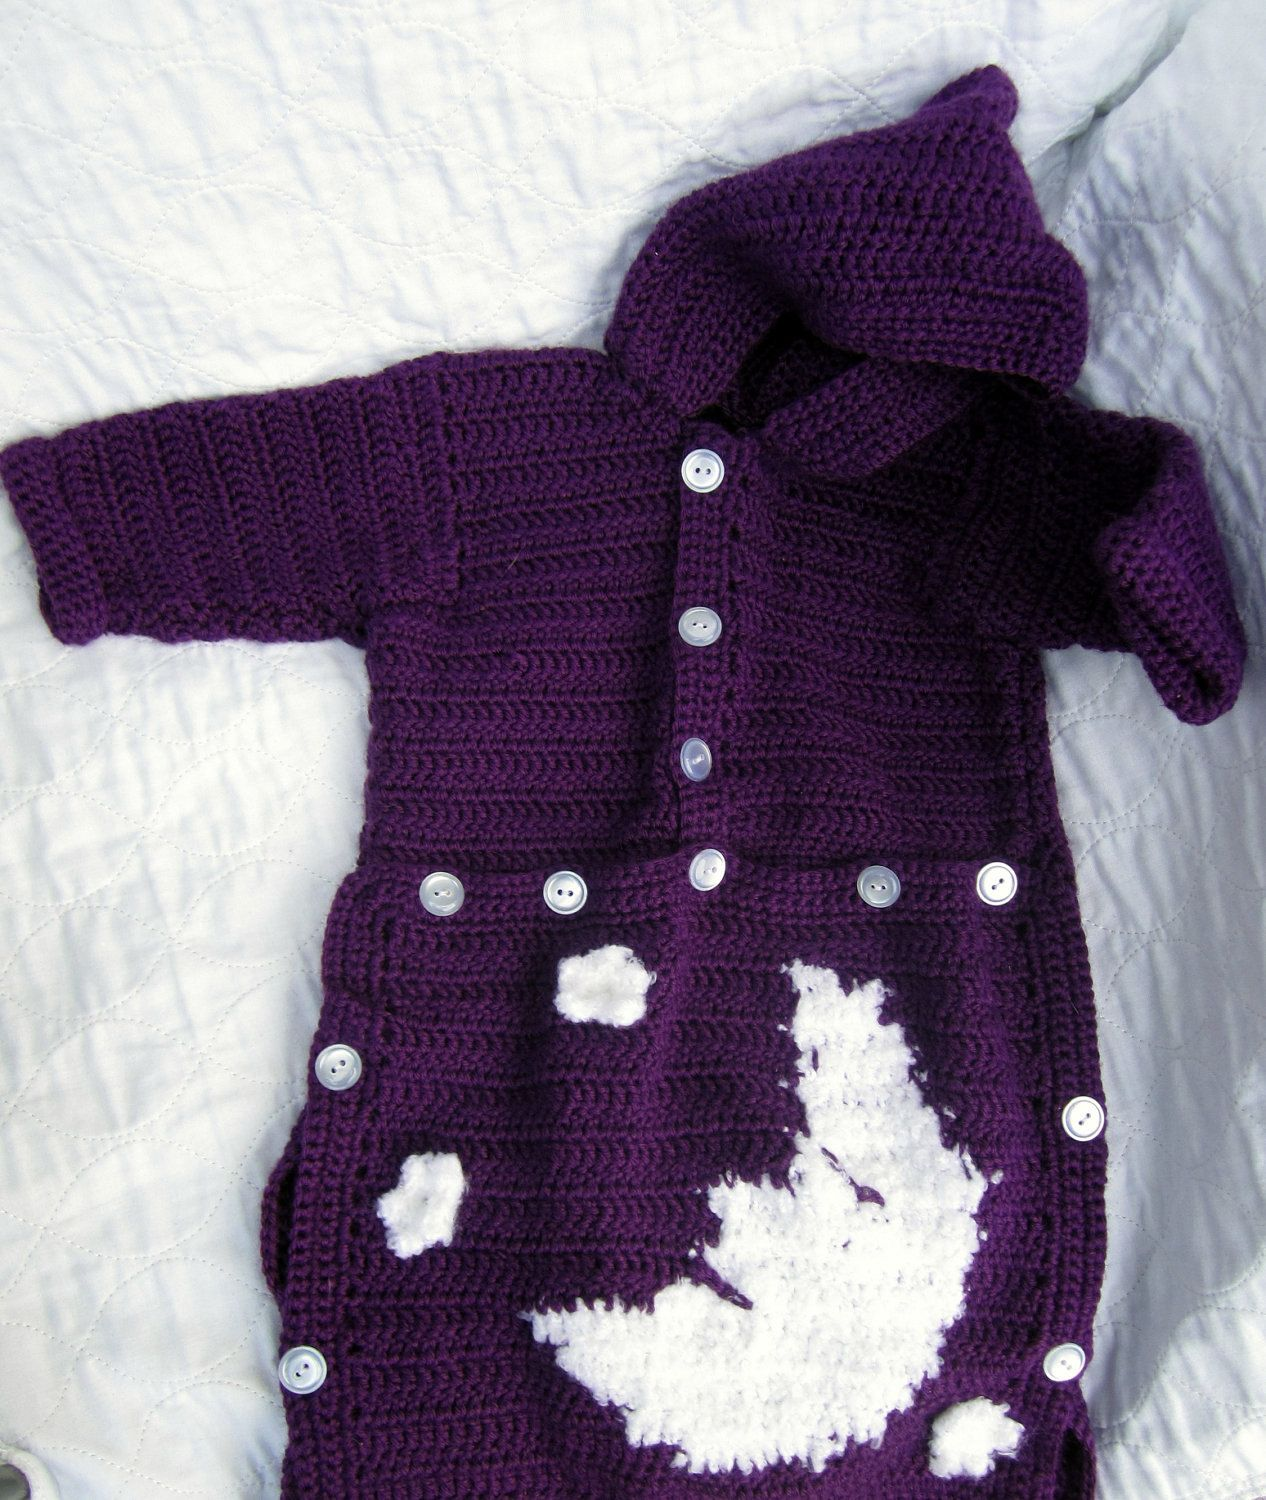 Crochet Moon and Stars Baby Bunting Sleeping Bag in Purple | Baby ...